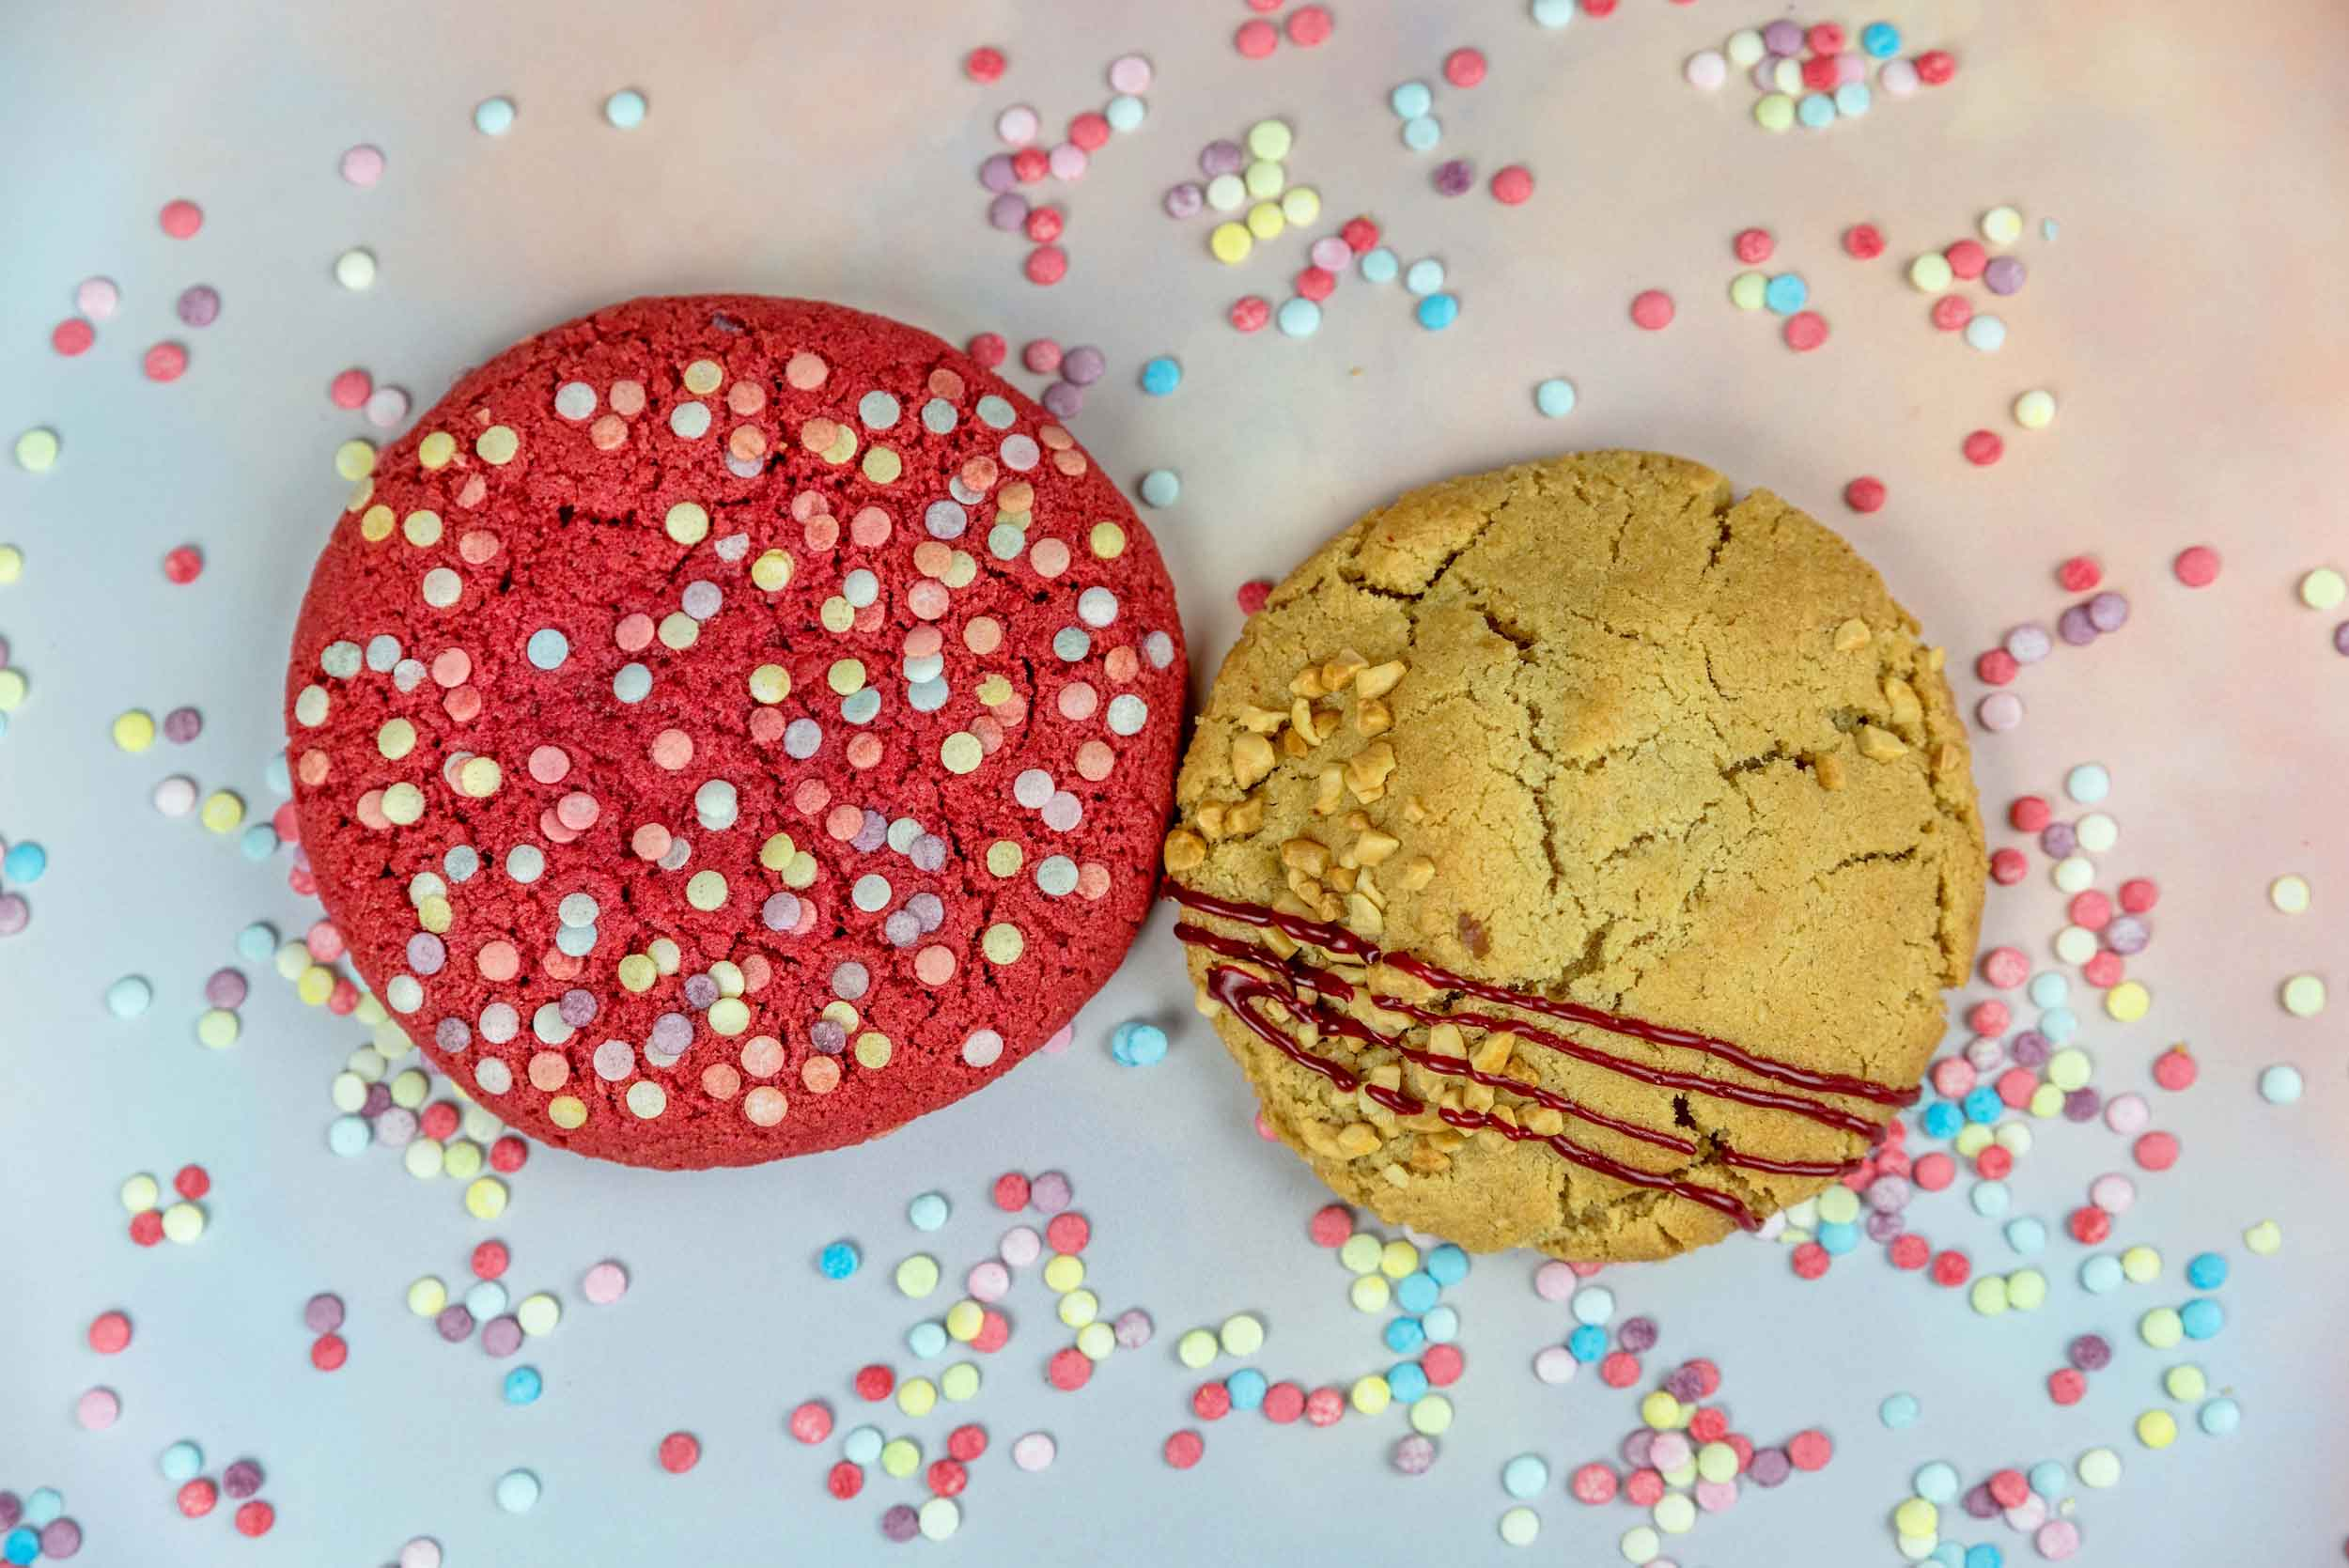 Floozie Cookie at Expo 2020